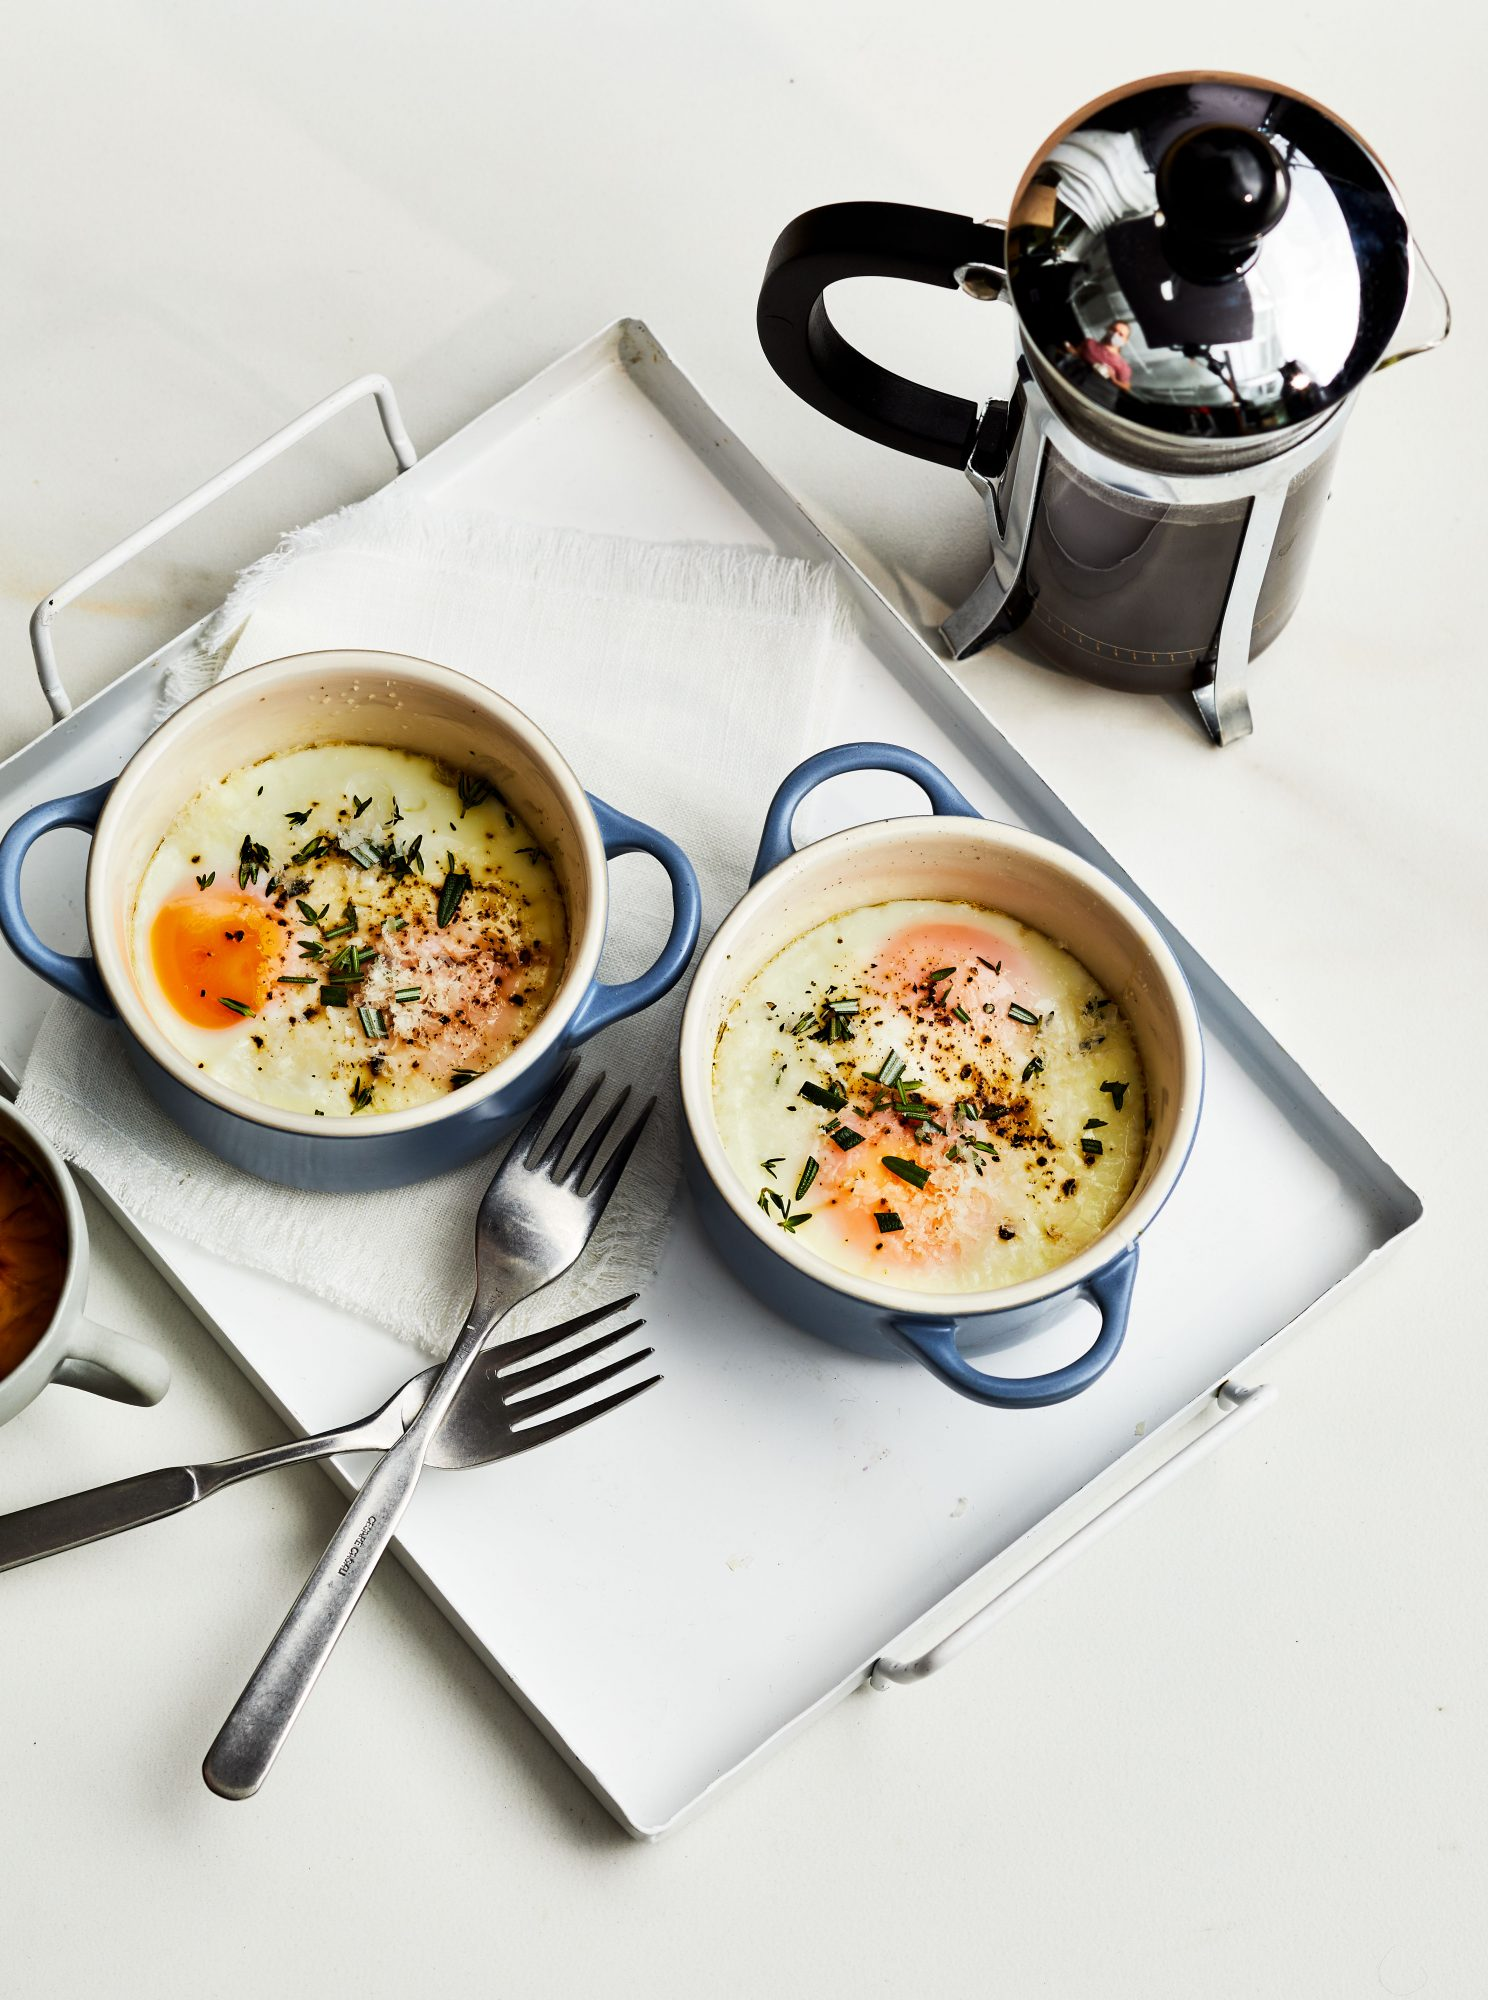 Classic Baked Eggs